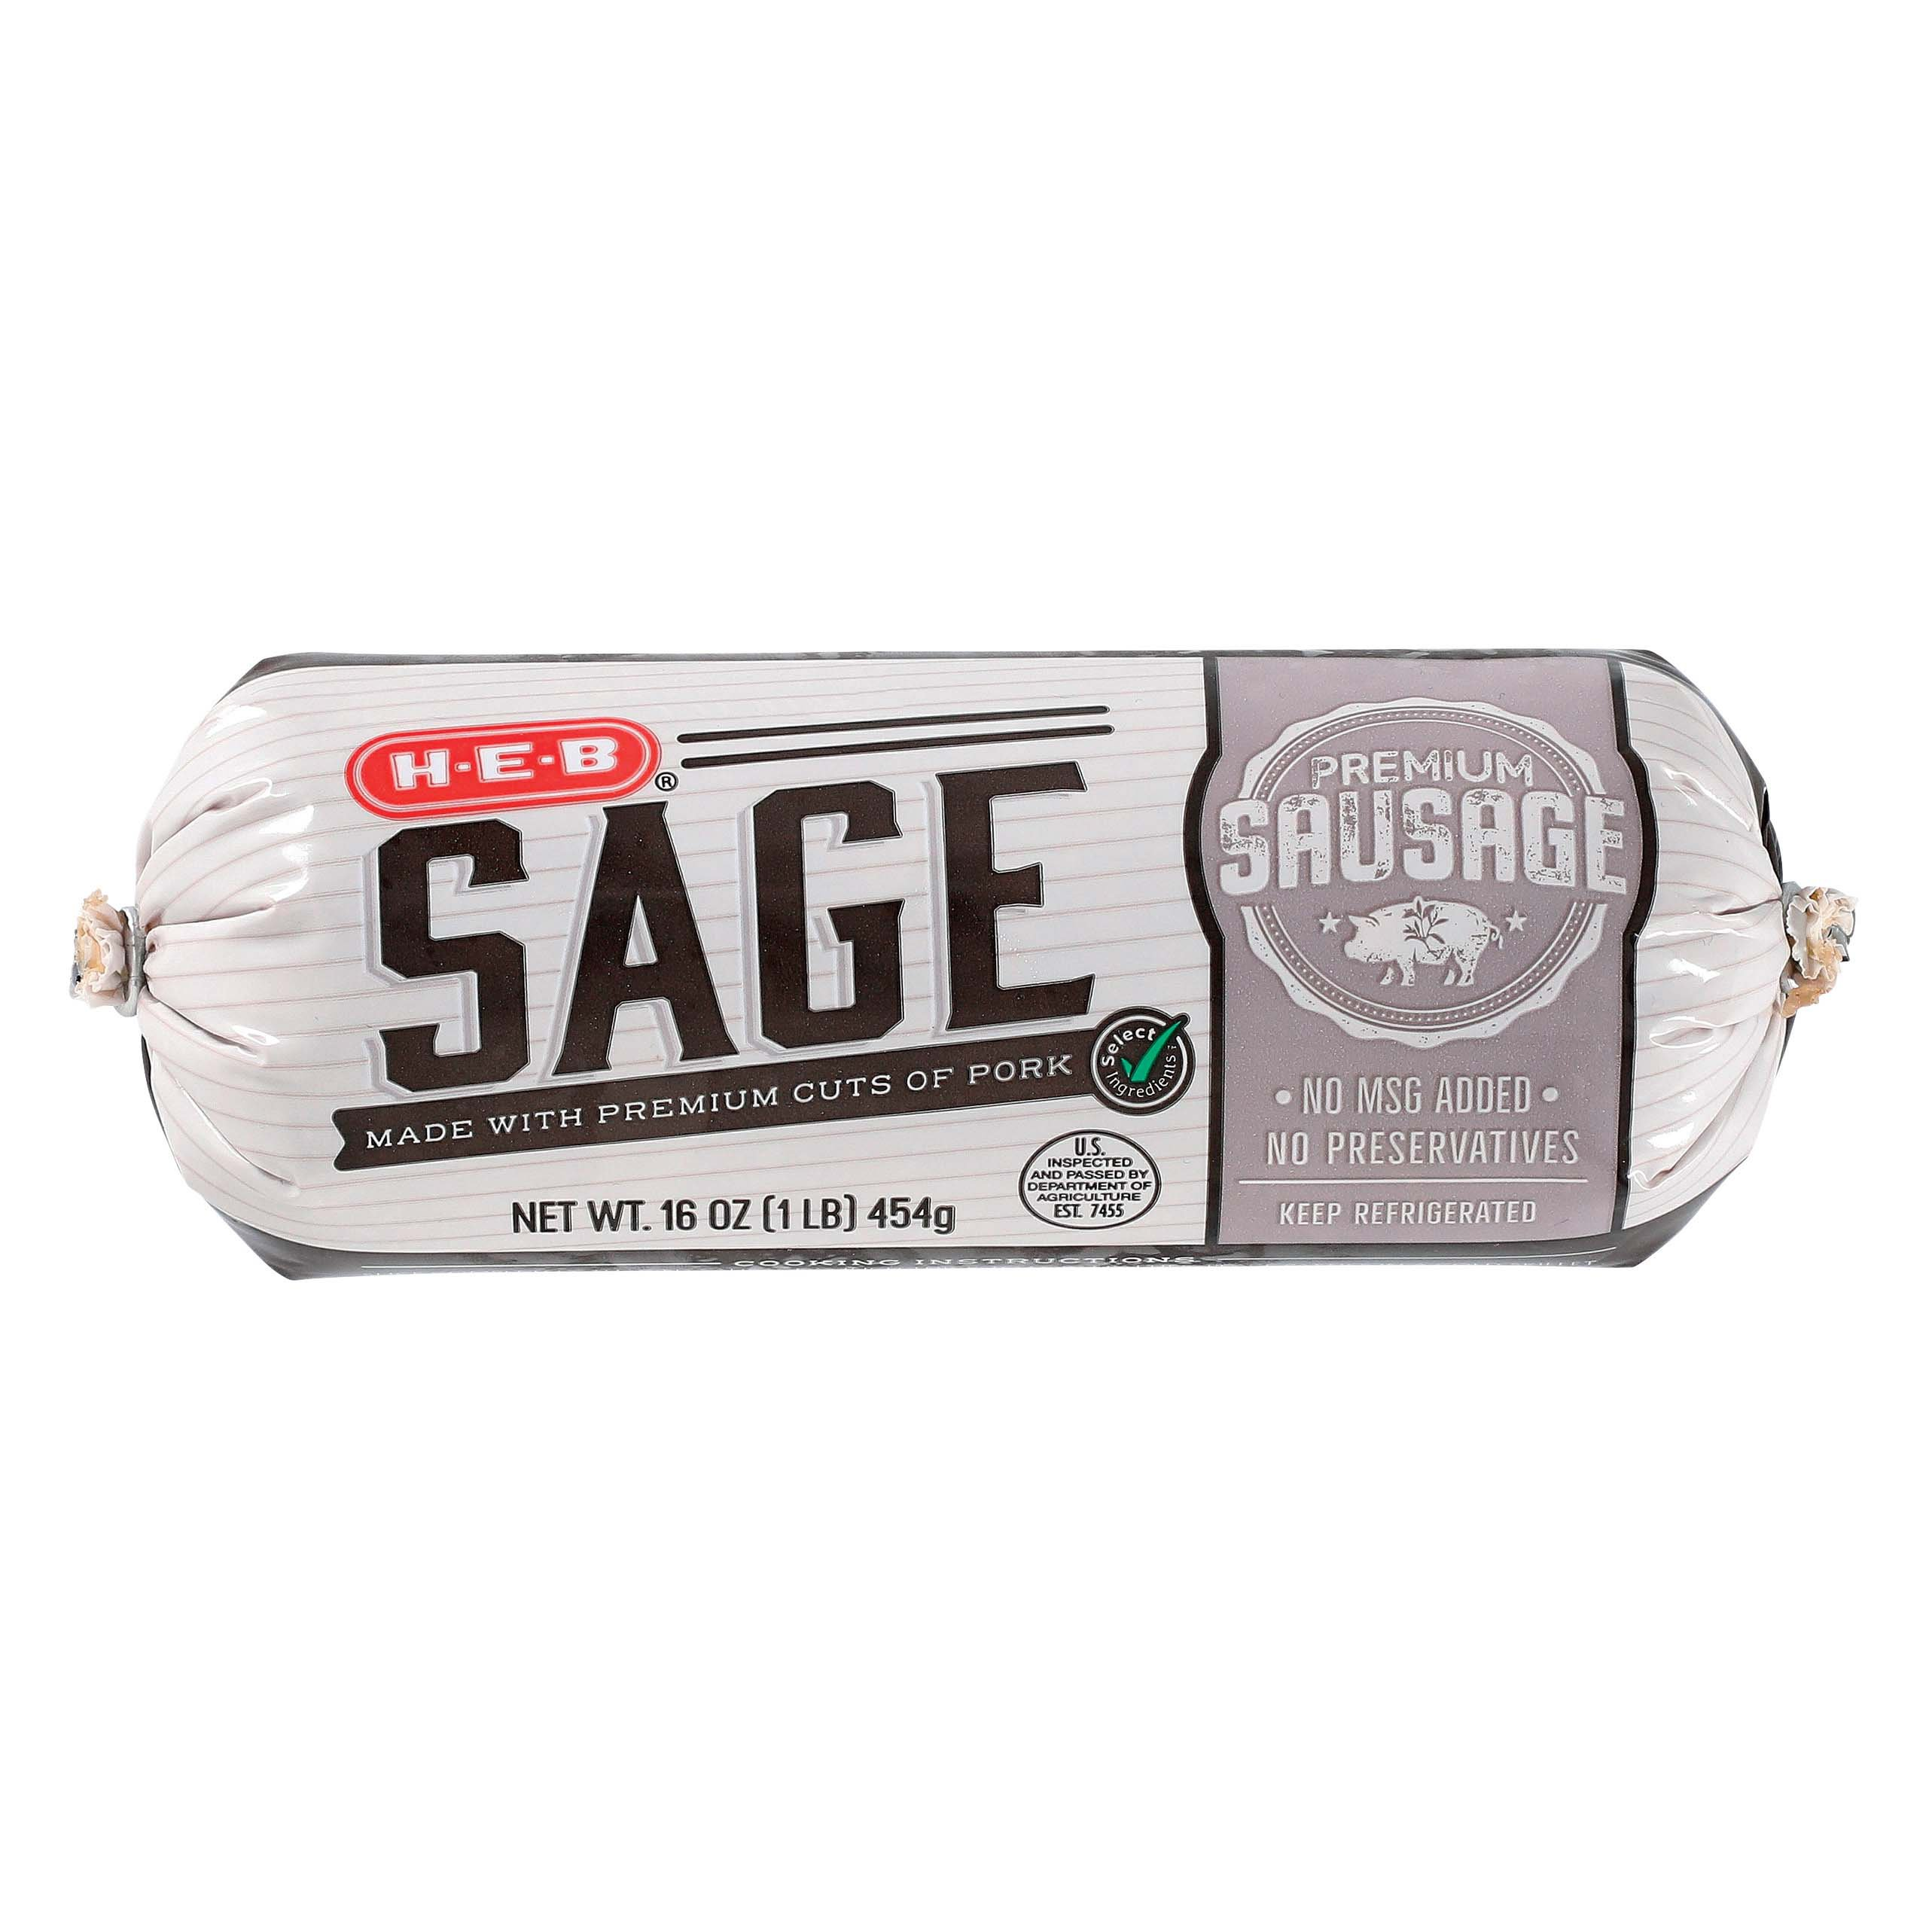 breakfast sausage shop heb everyday low prices online